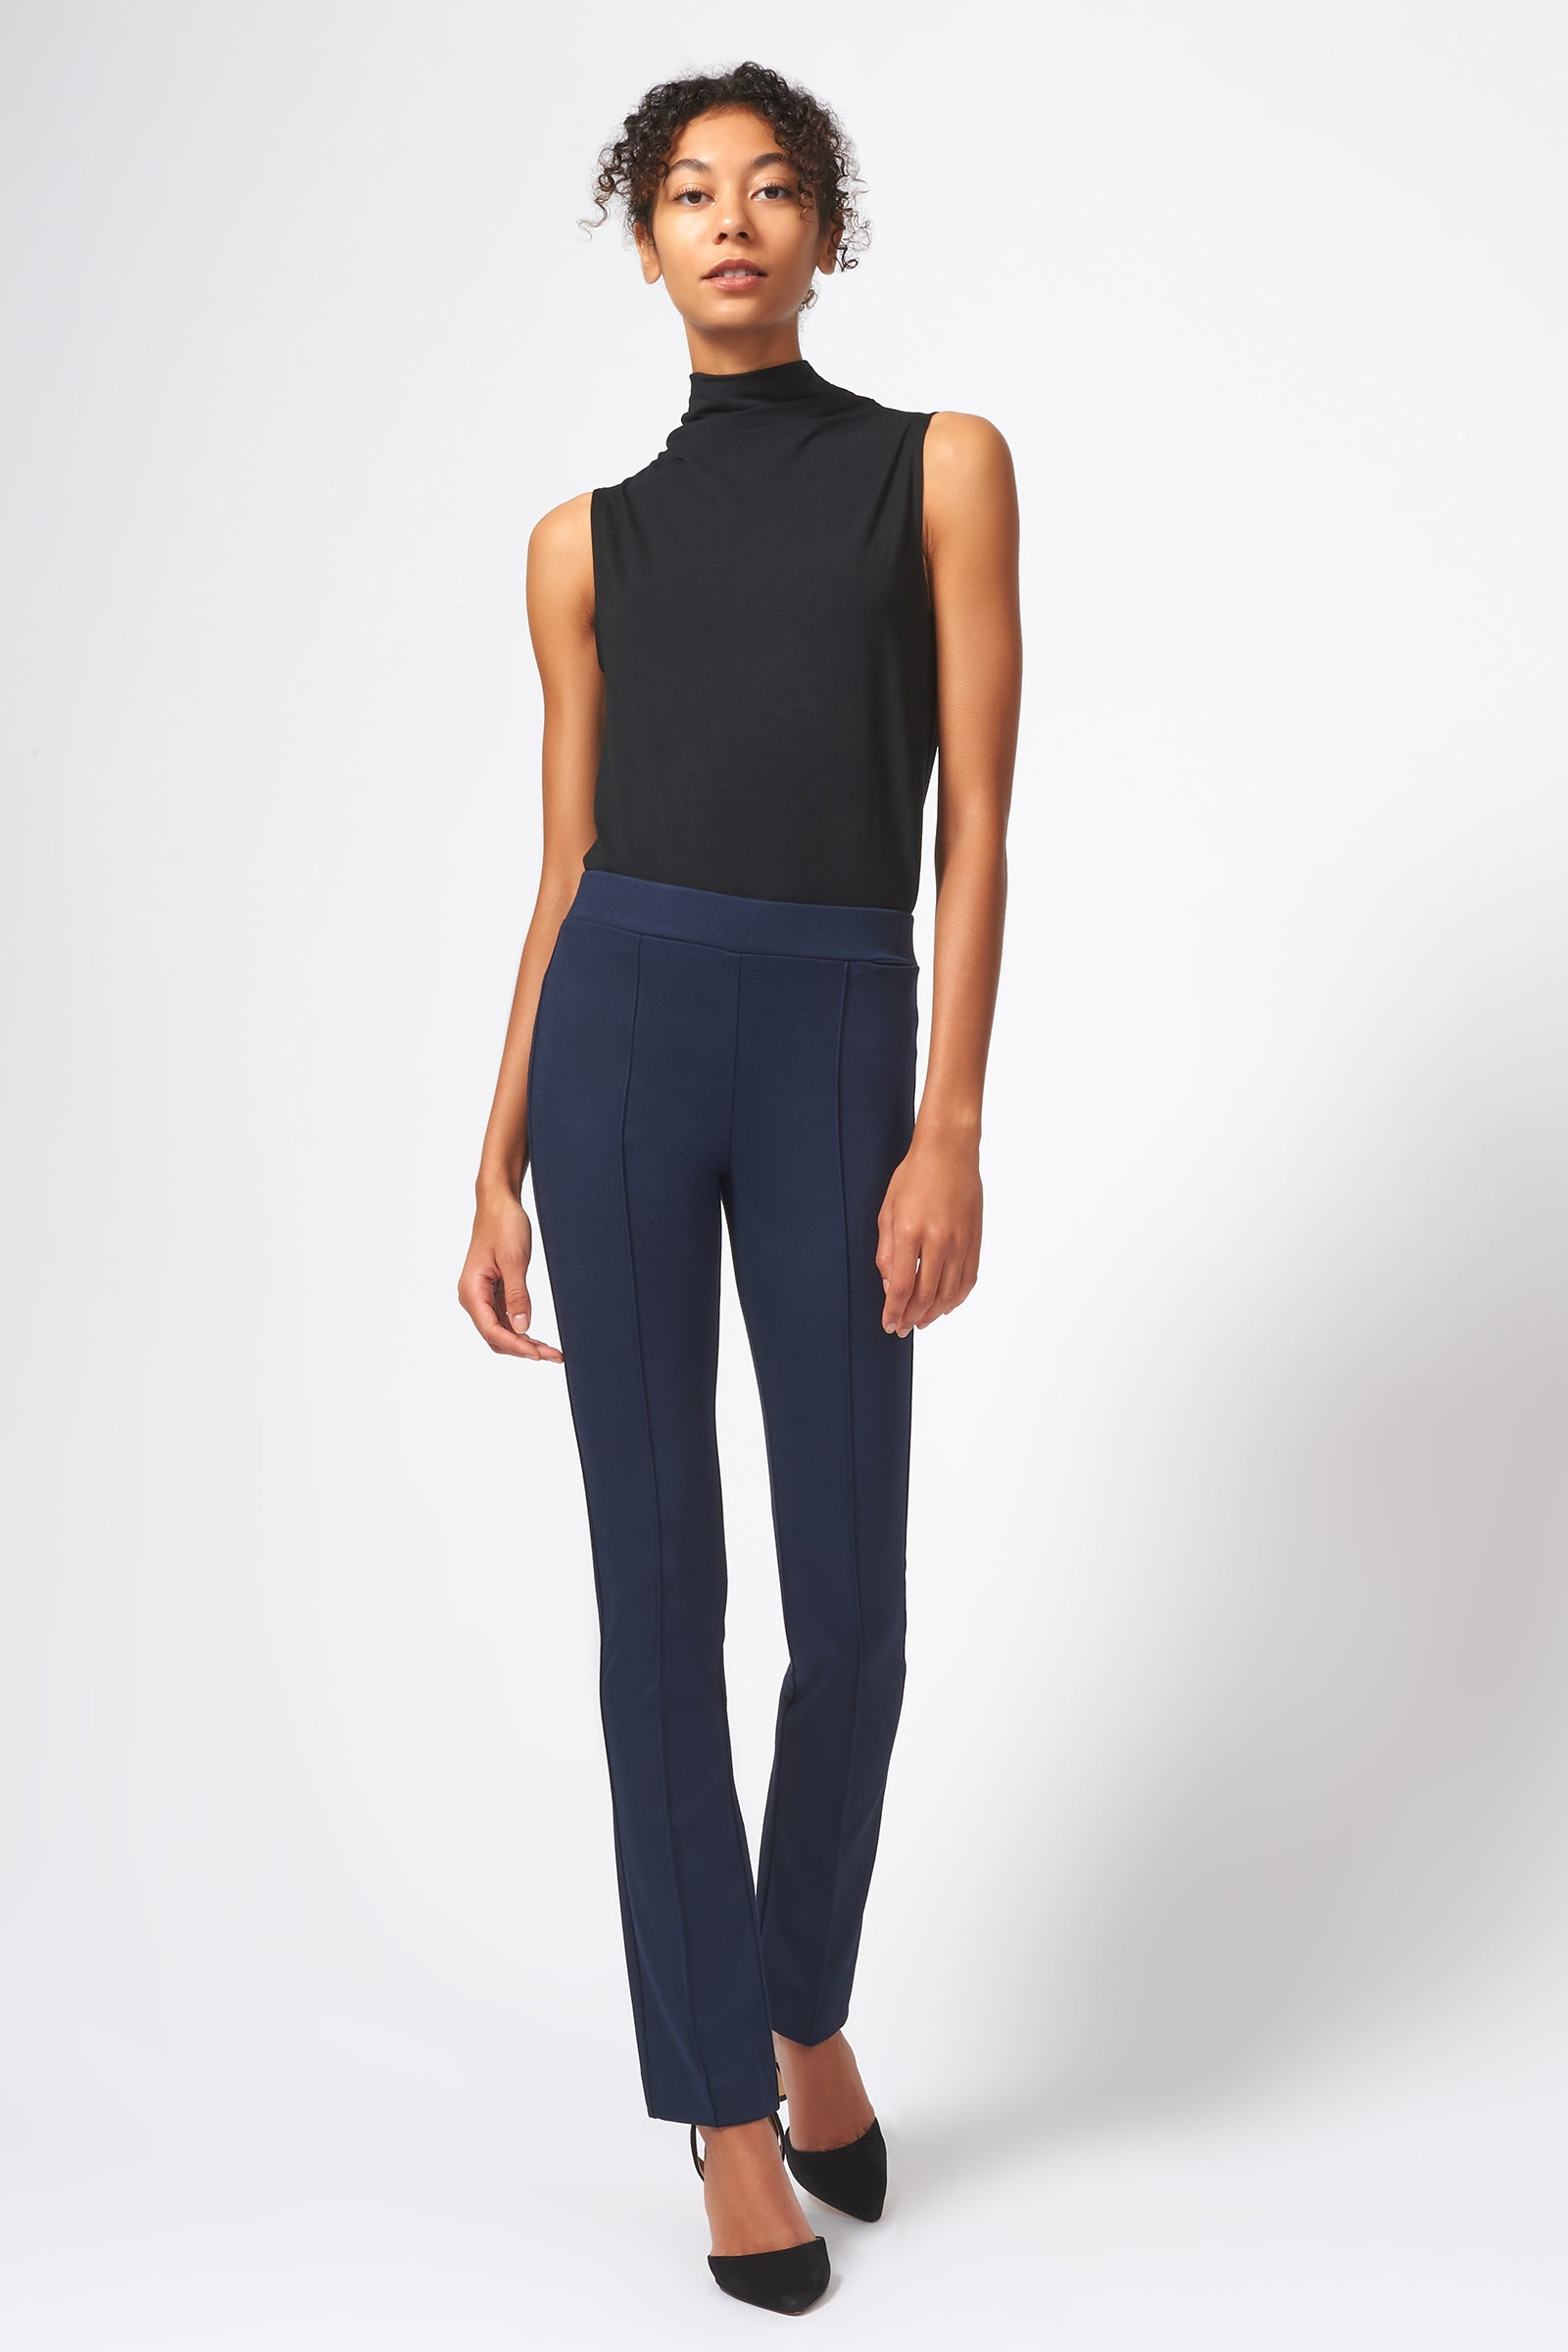 Kal Rieman Pintuck Ponte Straight Leg Pant in Navy on Model Full Front View